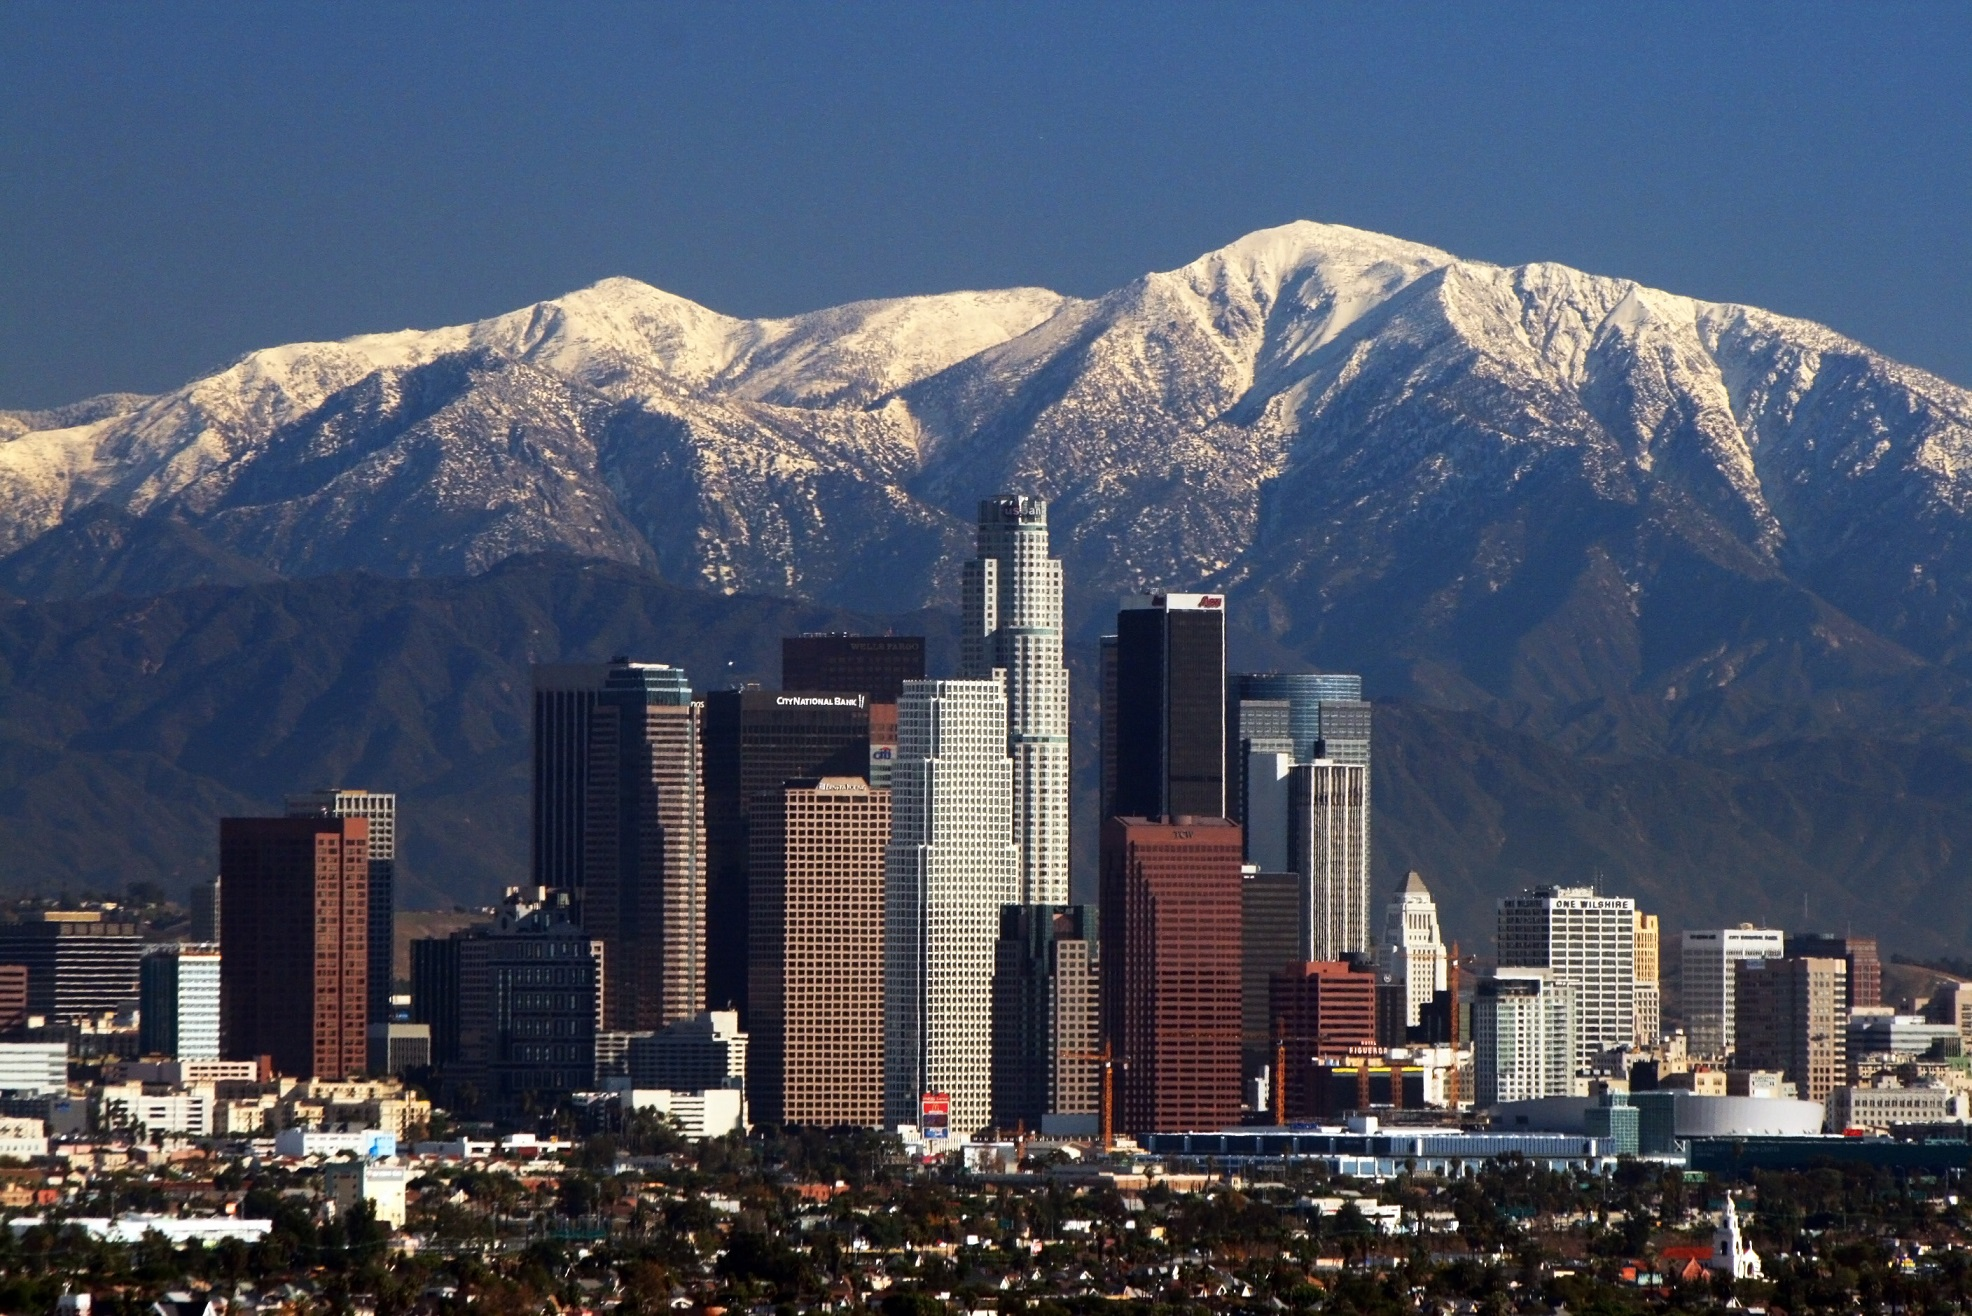 Afraid of not fitting in when you move to Los Angeles? Fit in with your neighbors in no time.